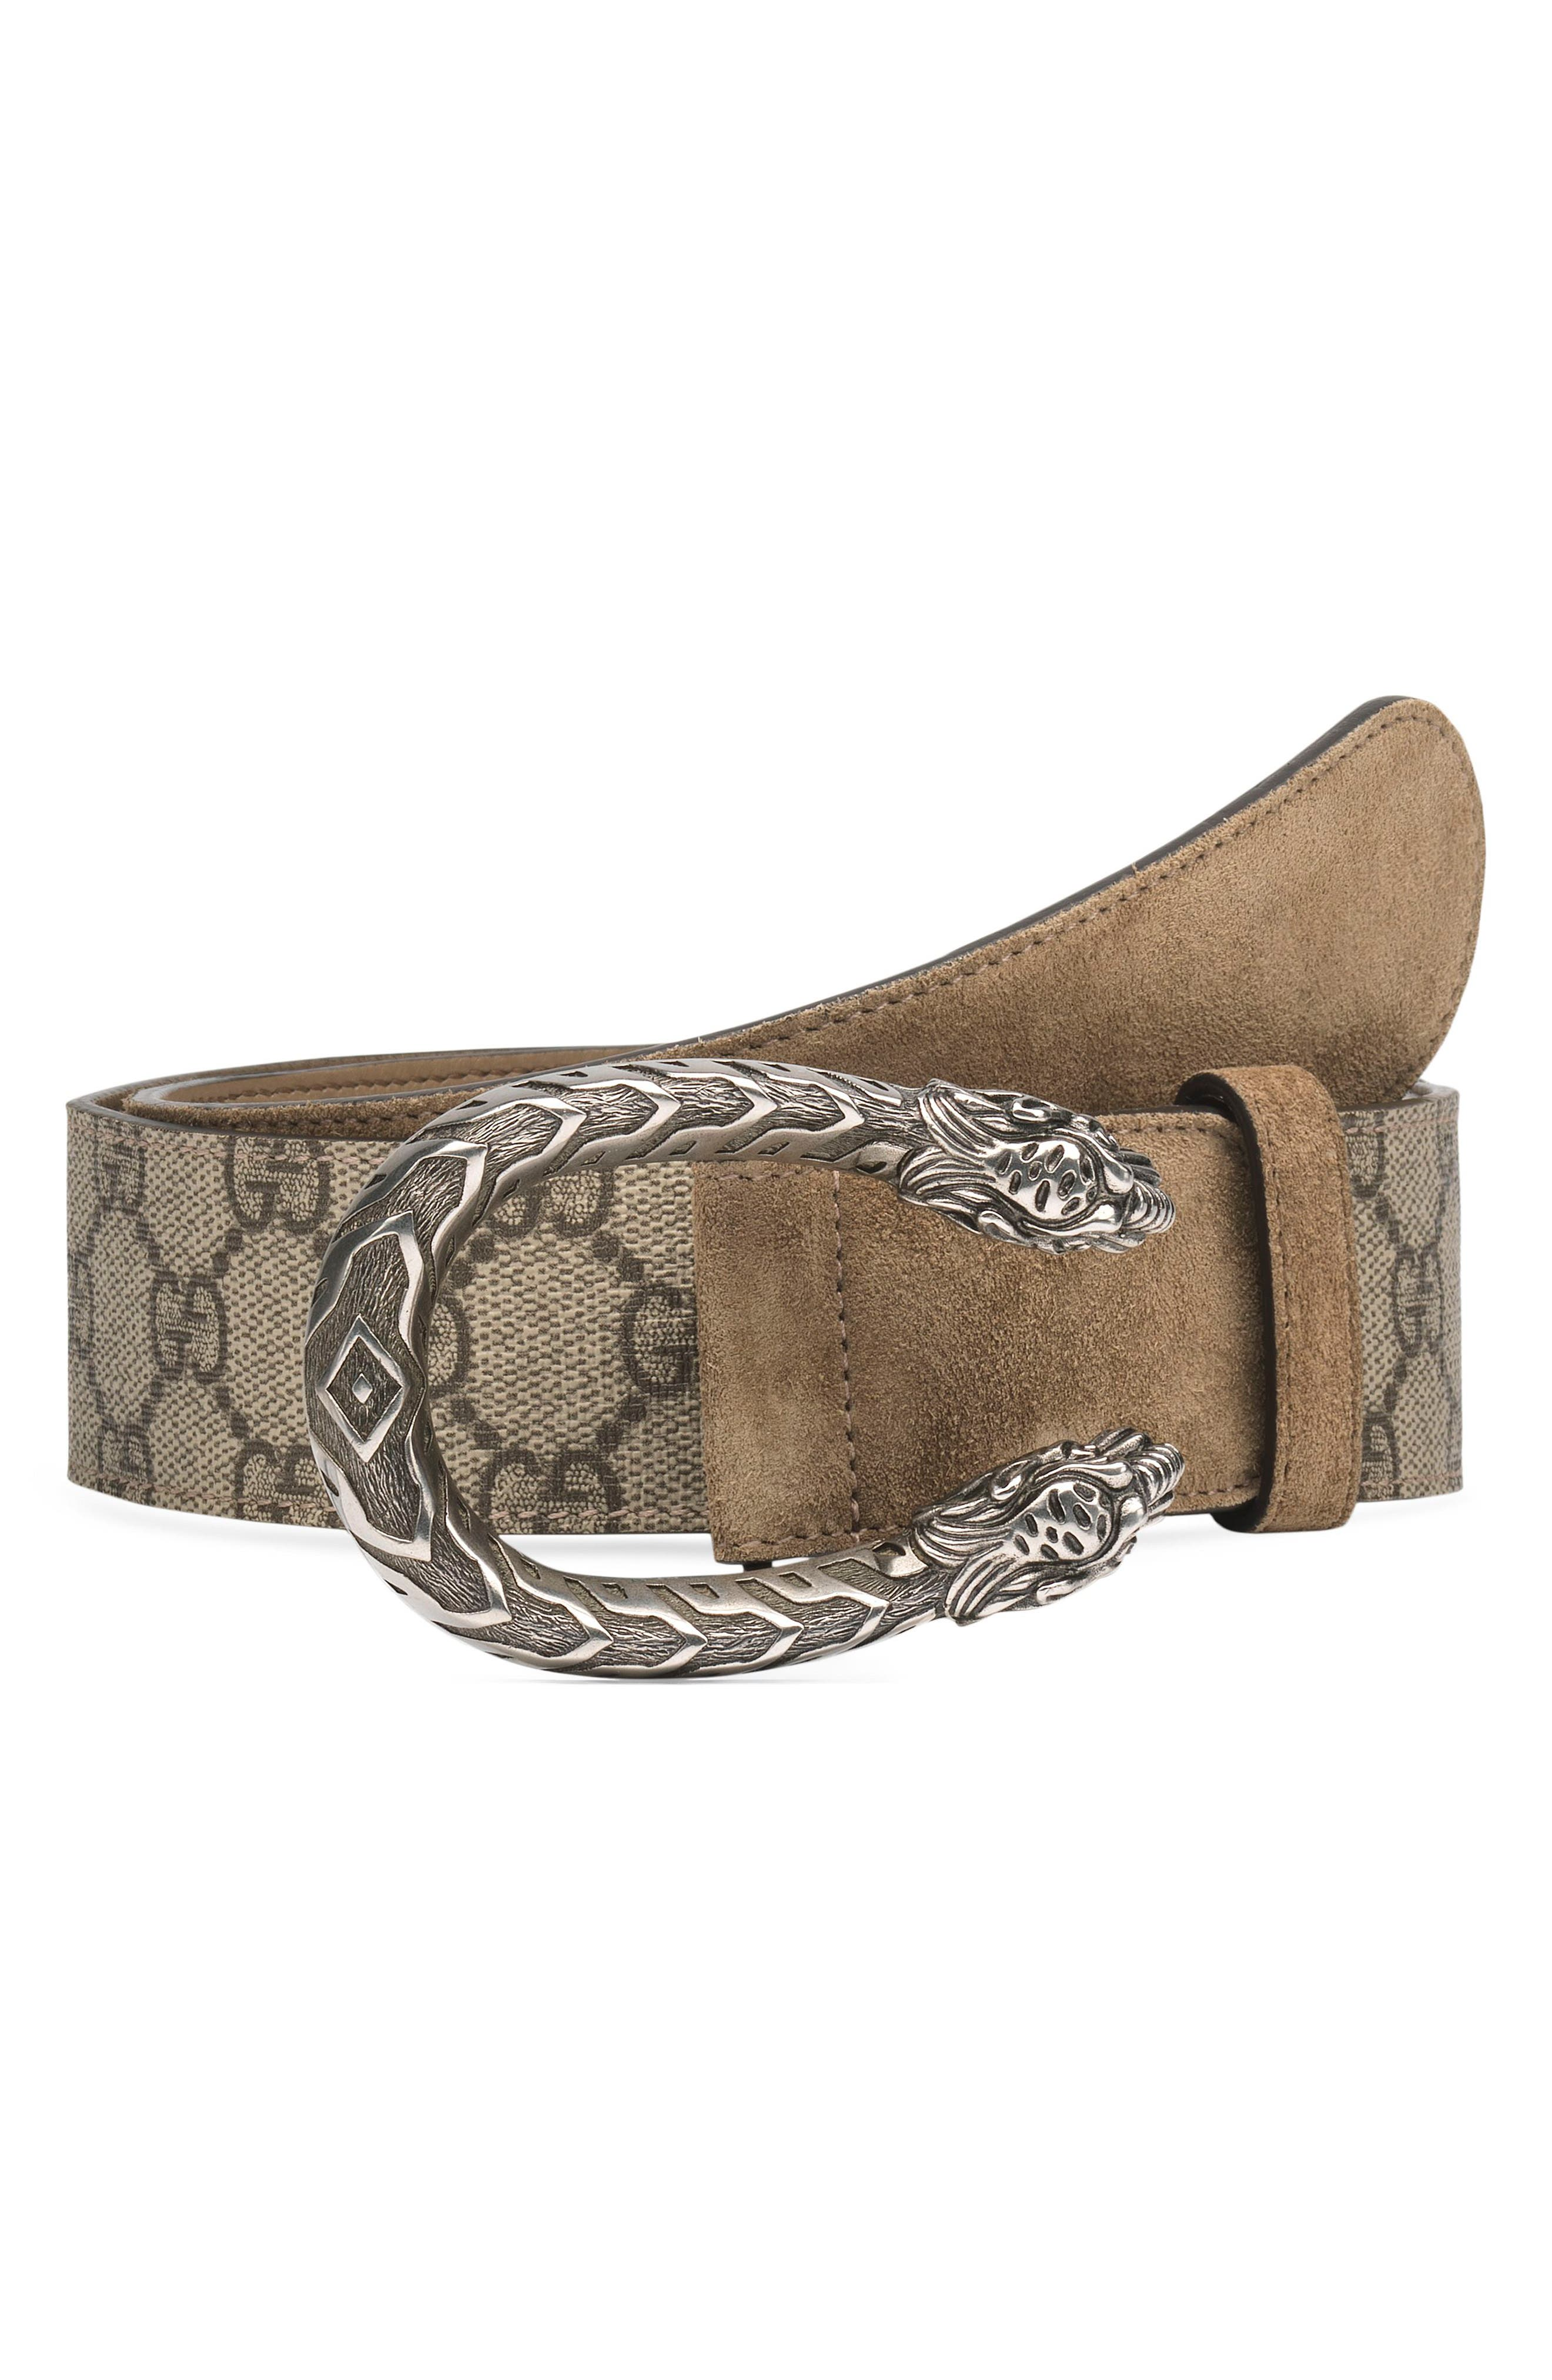 GUCCI, GG Supreme Tiger Head Spur Buckle Belt, Main thumbnail 1, color, EBONY/ TAUPE